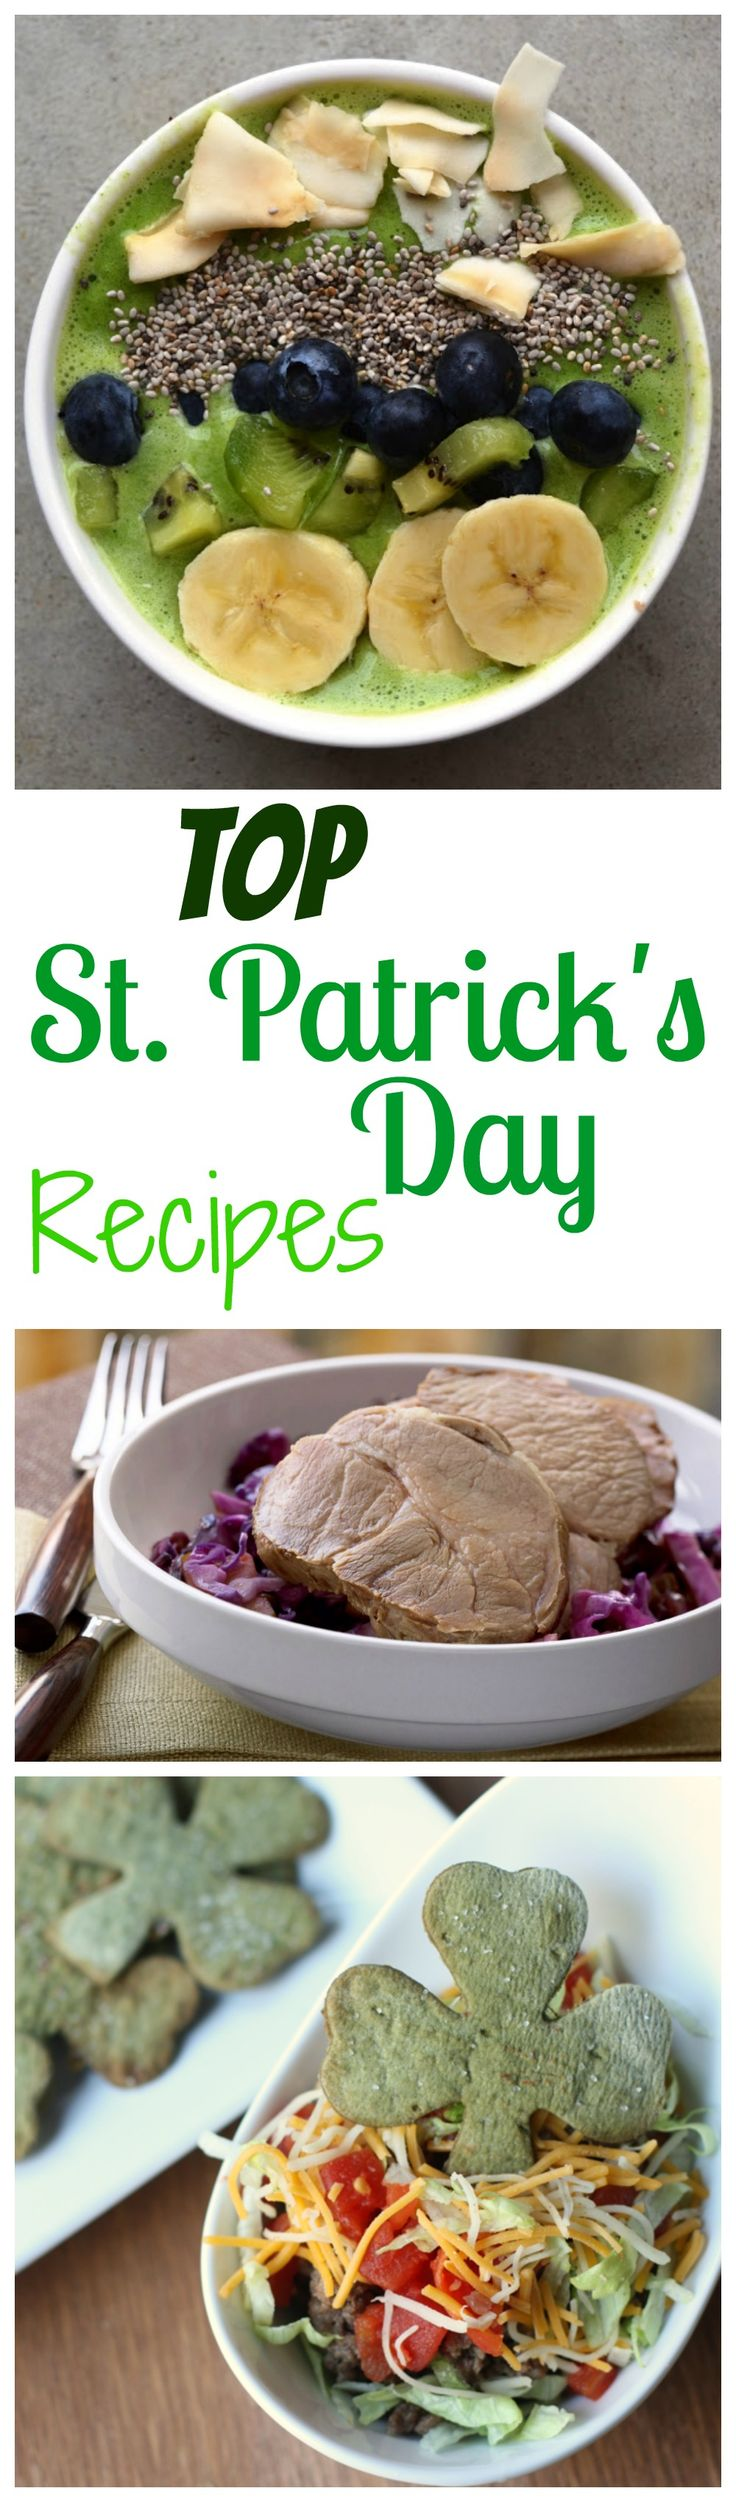 Top St. Patrick's Day Recipes including Gluten Free Blade Pork Roast with Braised Cabbage #ad #OntarioPork